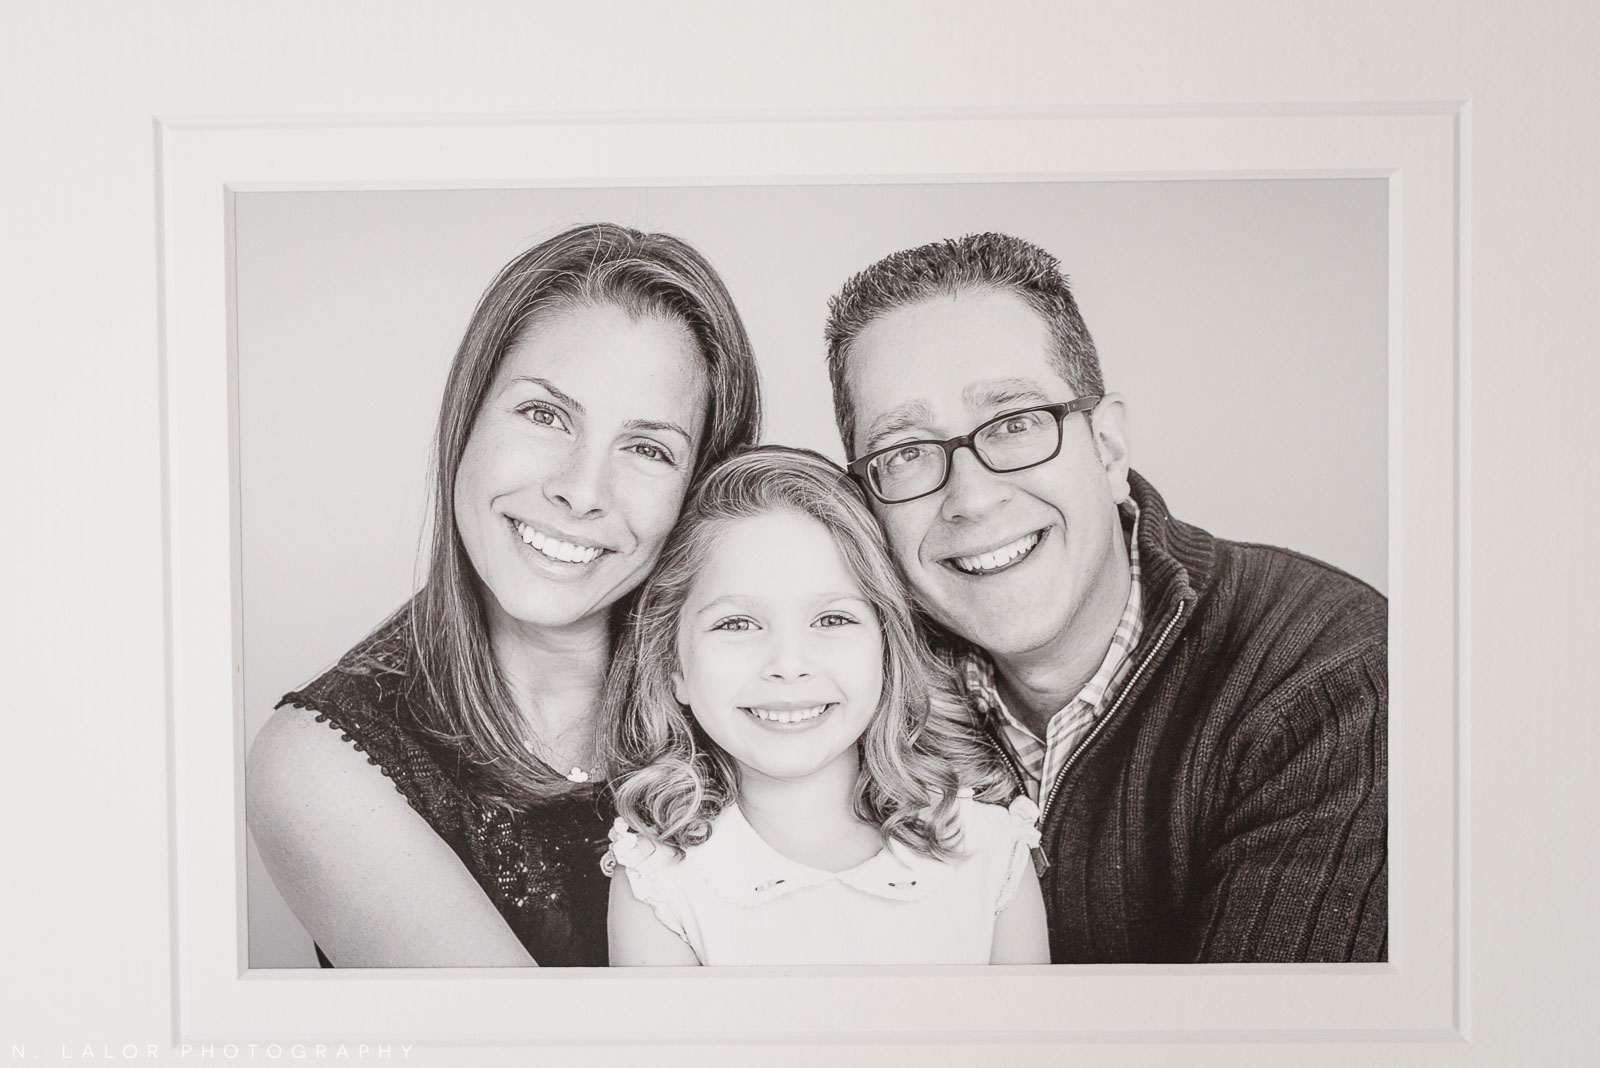 Mom and Dad with daughter - fine art print. Family photoshoot by N. Lalor Photography in Greenwich, Connecticut.